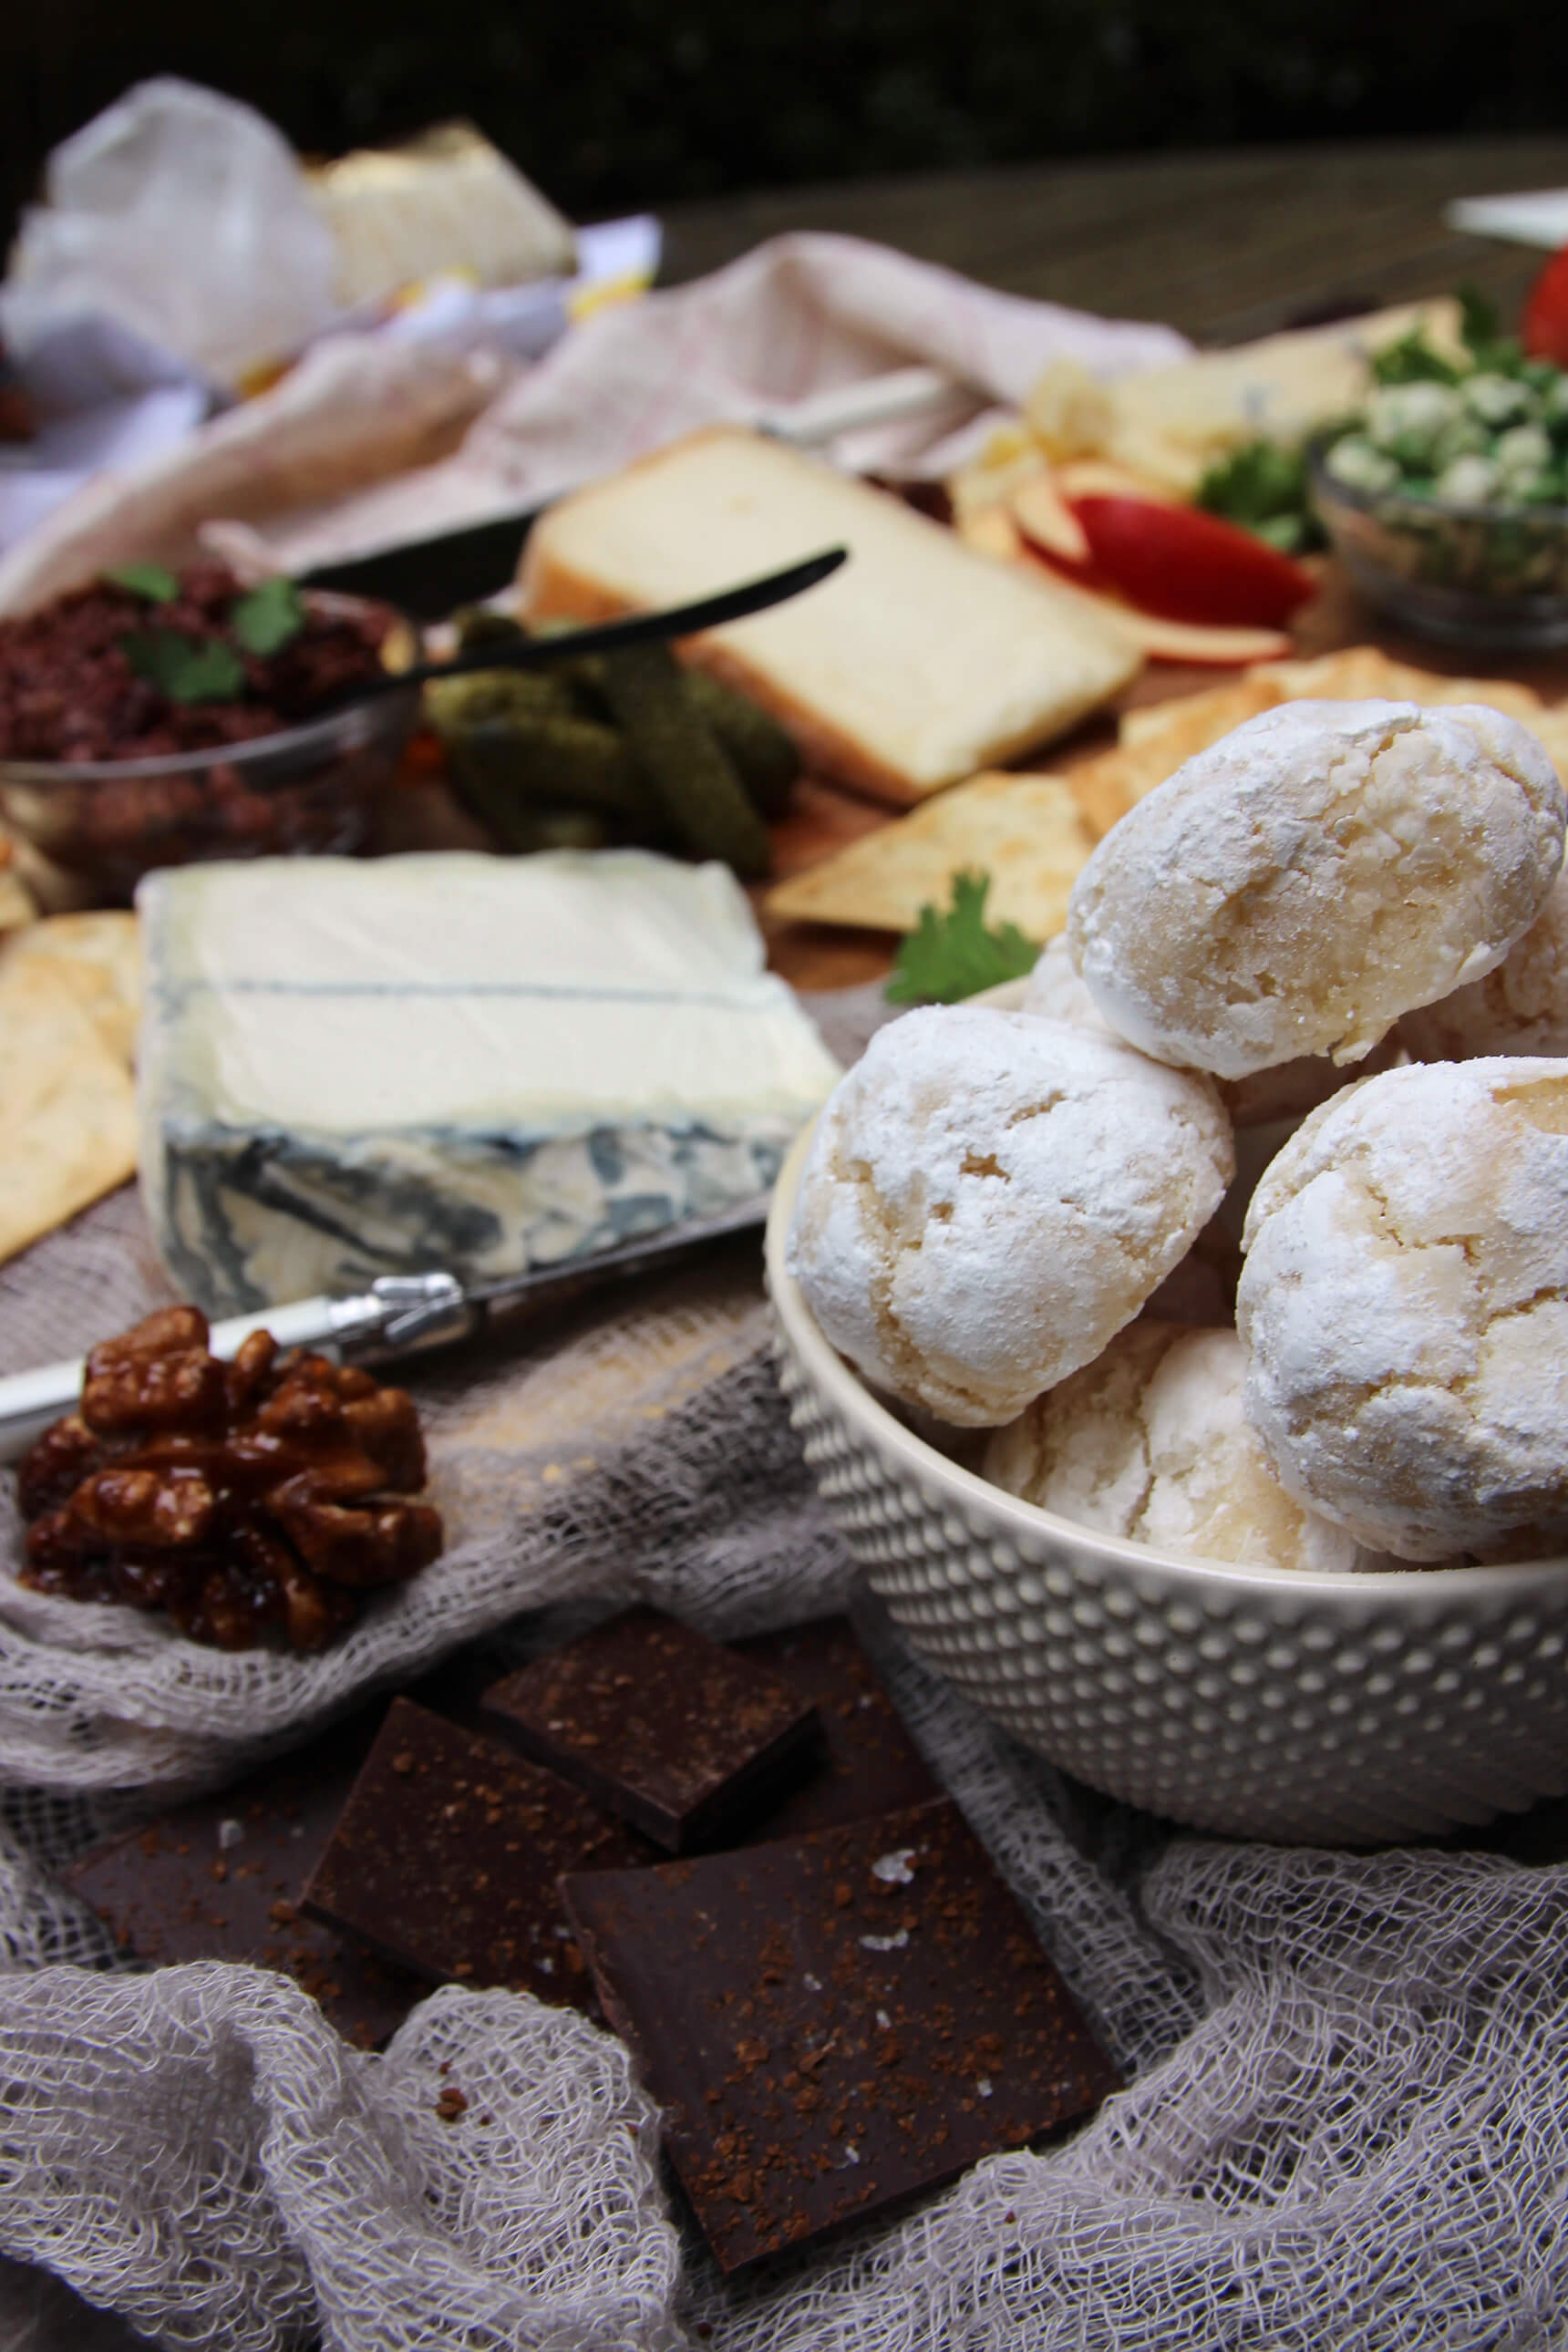 How-To Make A Passover Friendly Cheeseboard